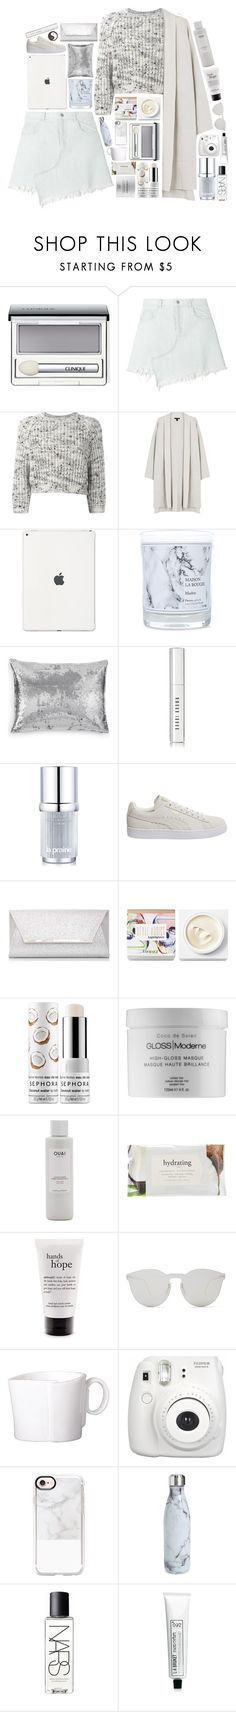 """""""Let the leaves fall off in the summer"""" by in-another-planet ❤ liked on Polyvore featuring Clinique, Sandy Liang, Brunello Cucinelli, Eileen Fisher, Maison La Bougie, Calvin Klein, Bobbi Brown Cosmetics, La Prairie, Puma and Dorothy Perkins"""